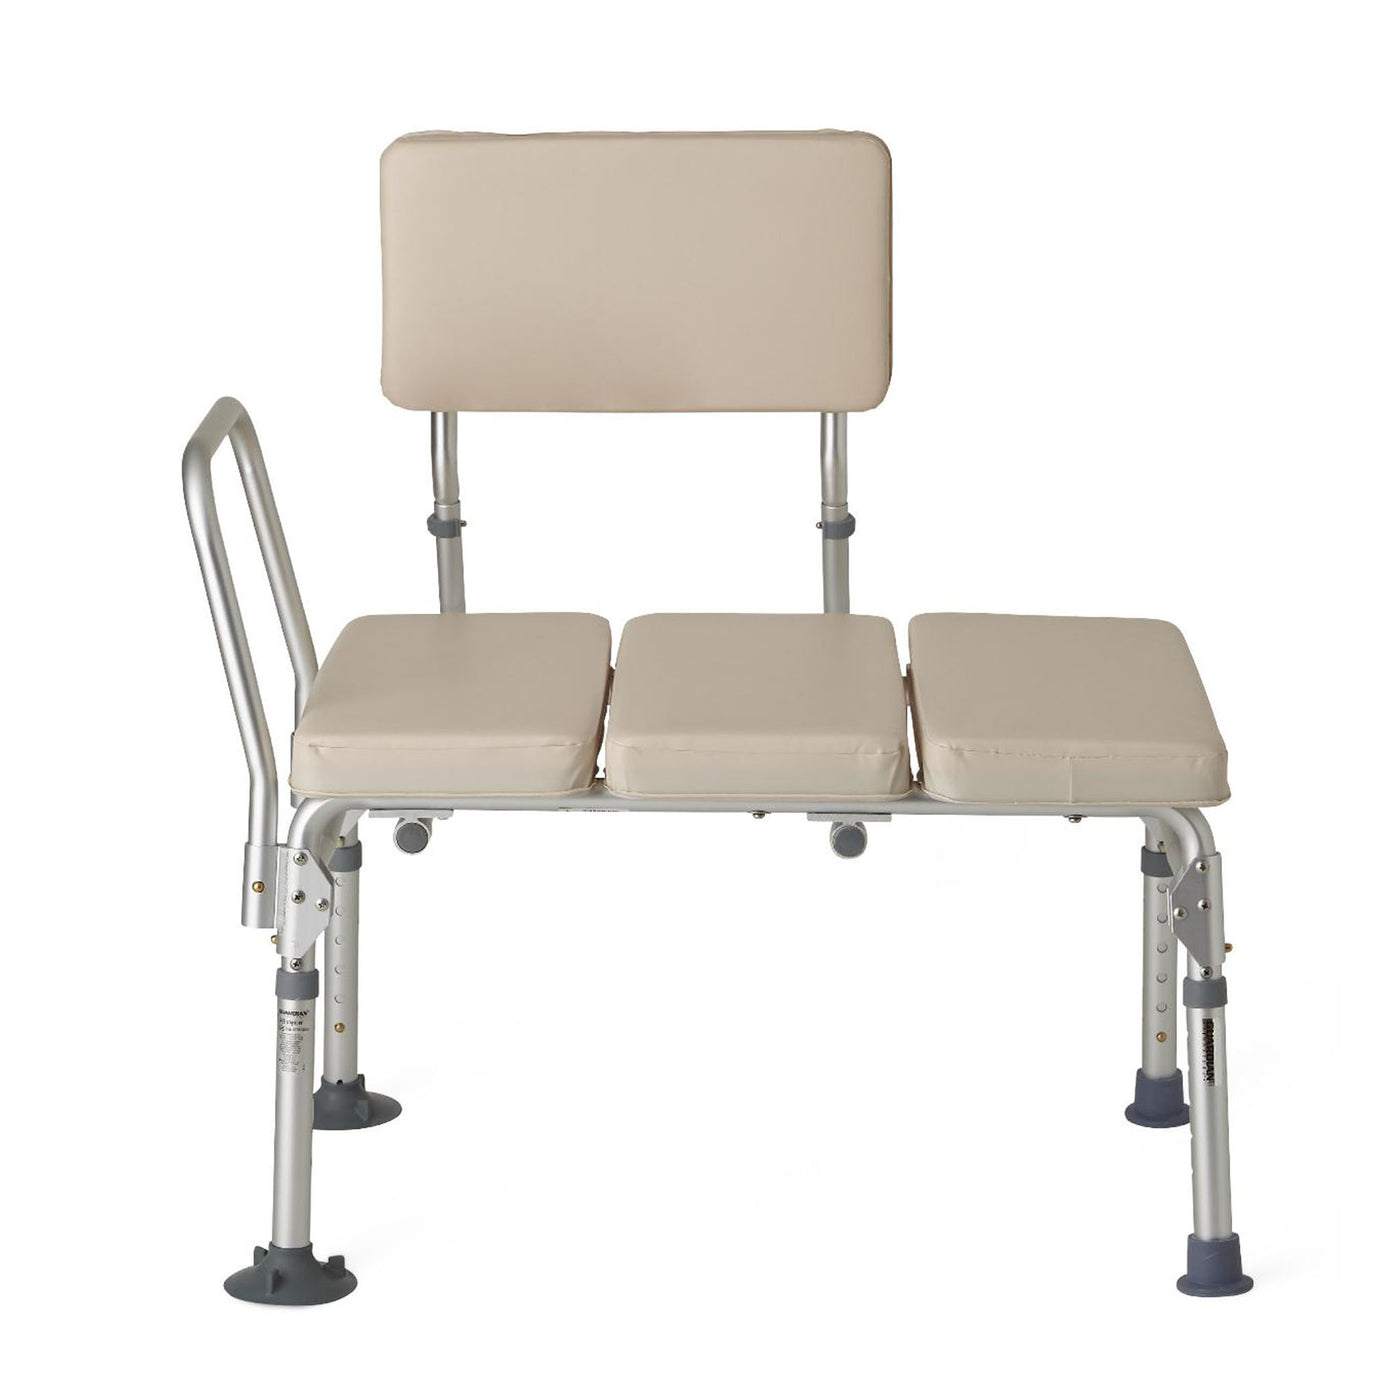 Medline Guardian Padded Transfer Bench at Meridian Medical Supply